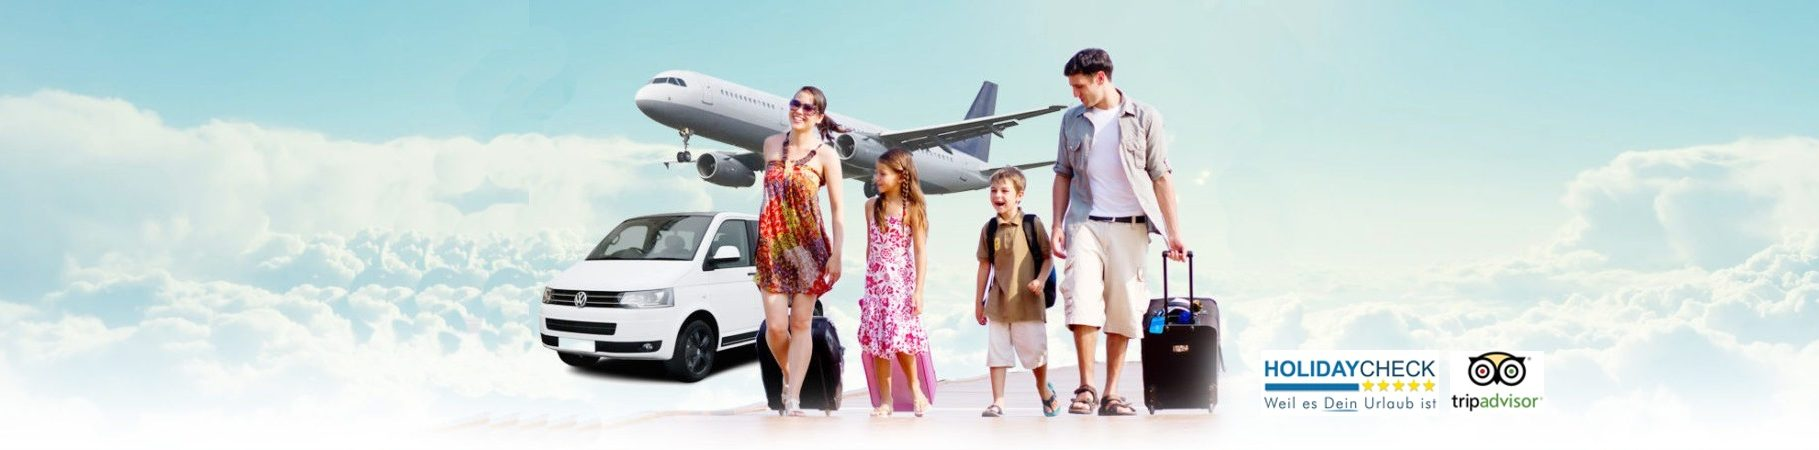 Airport transfer to Hotels